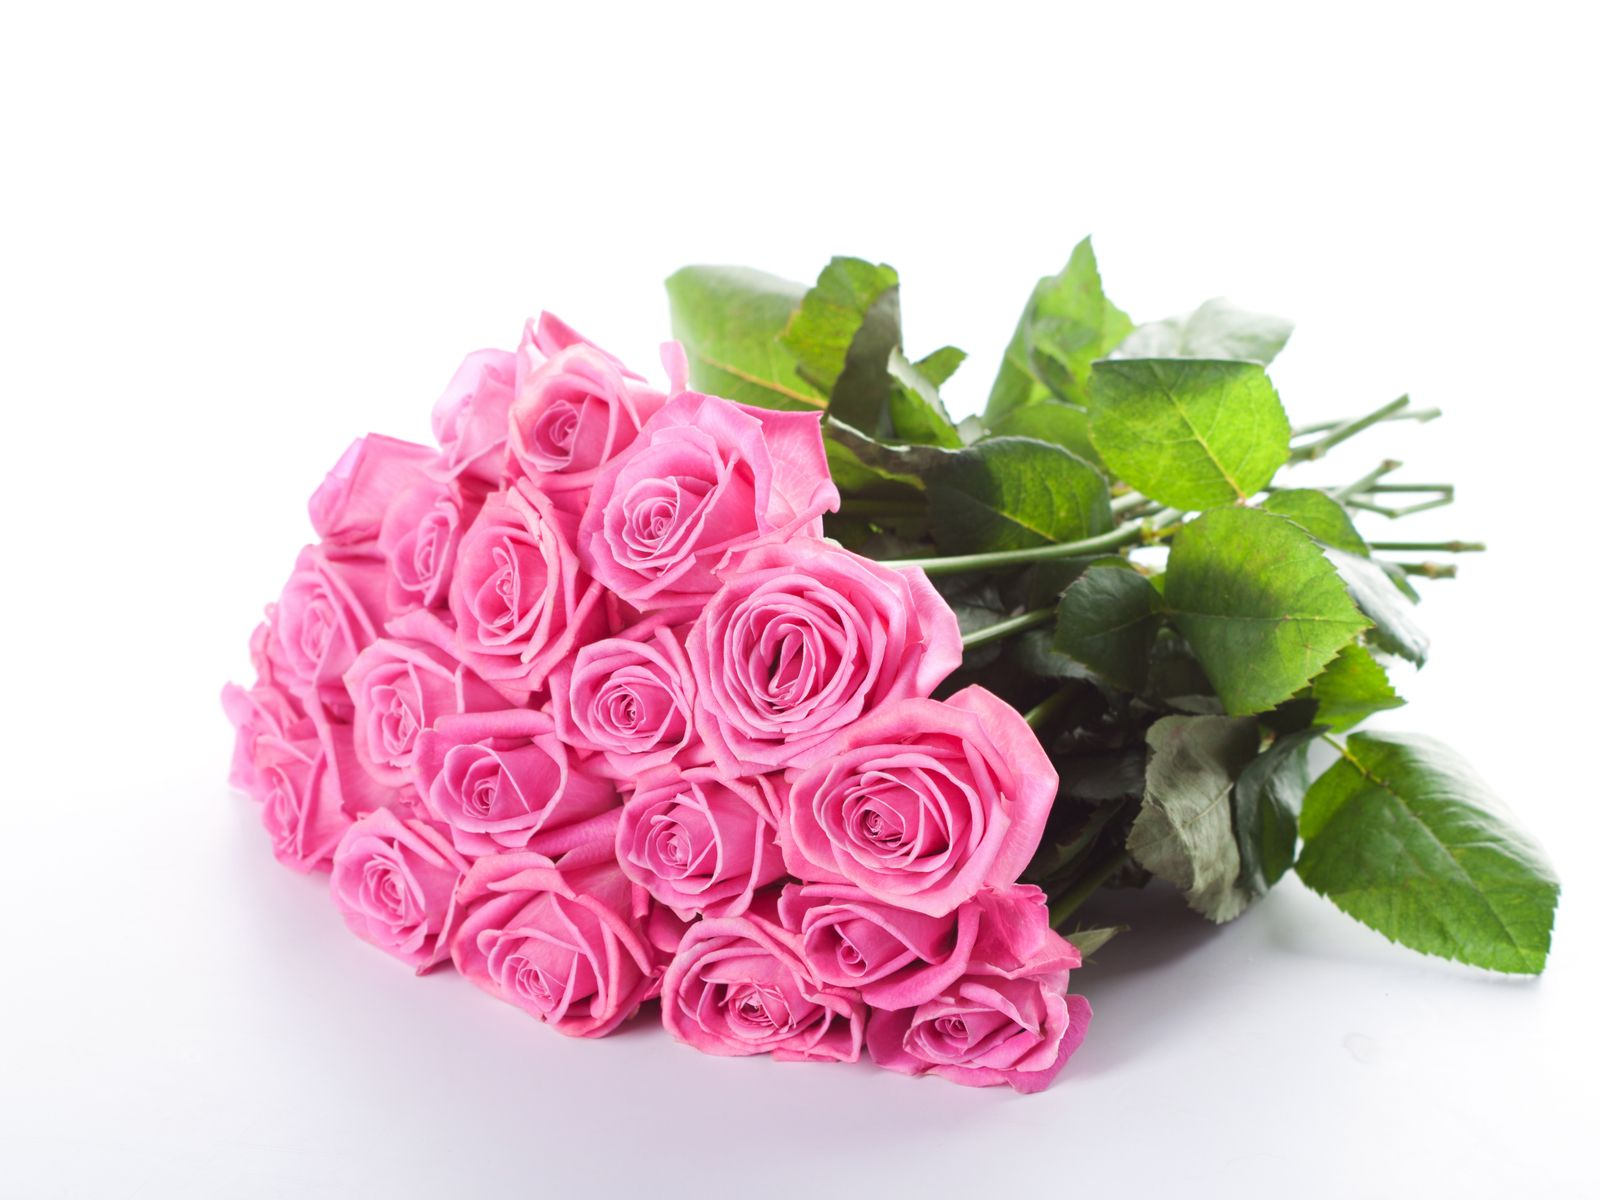 Pink Rose Bouquet Of Roses Hd Flower Wallpaper Free S Images